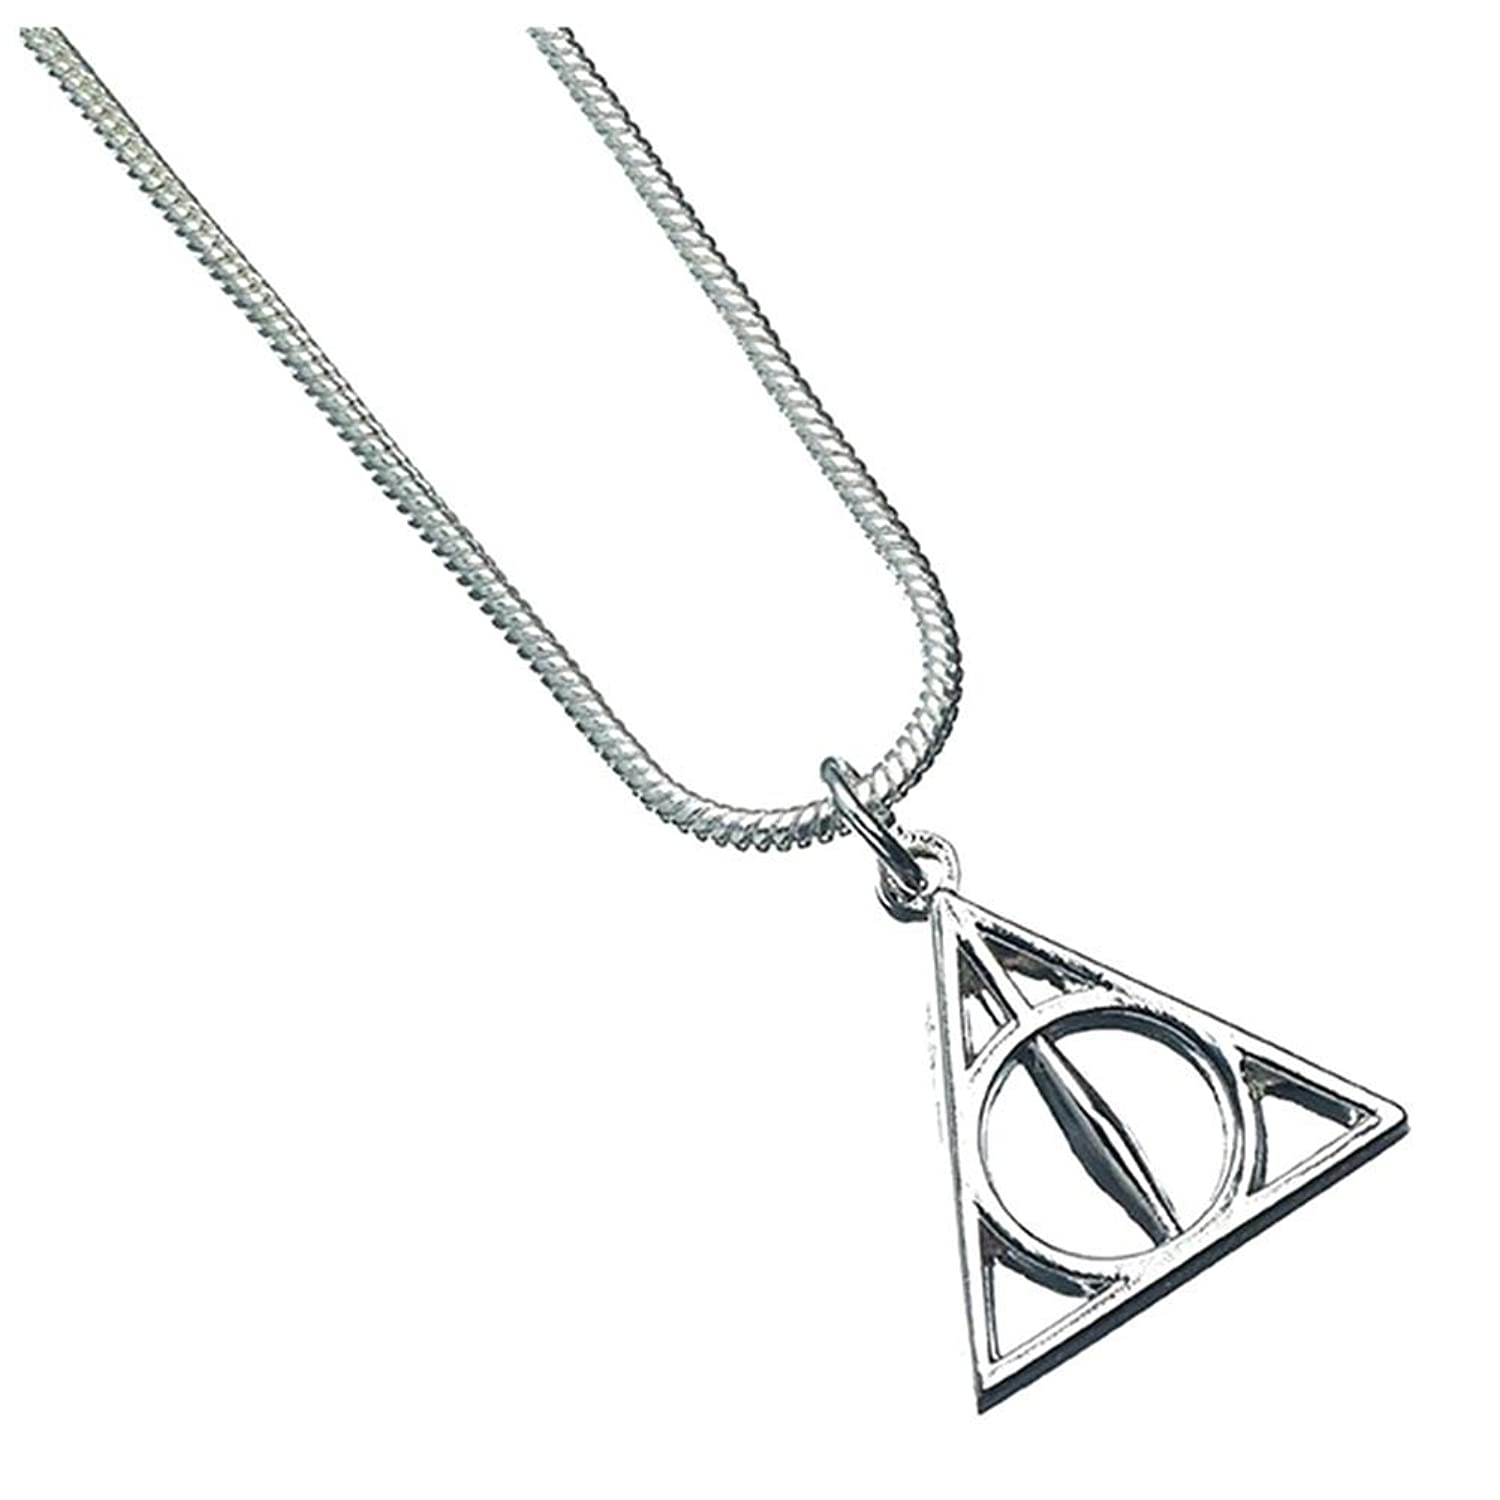 Official Sterling Silver Harry Potter Jewellery Deathly Hallows Necklace GbLynN8lqx